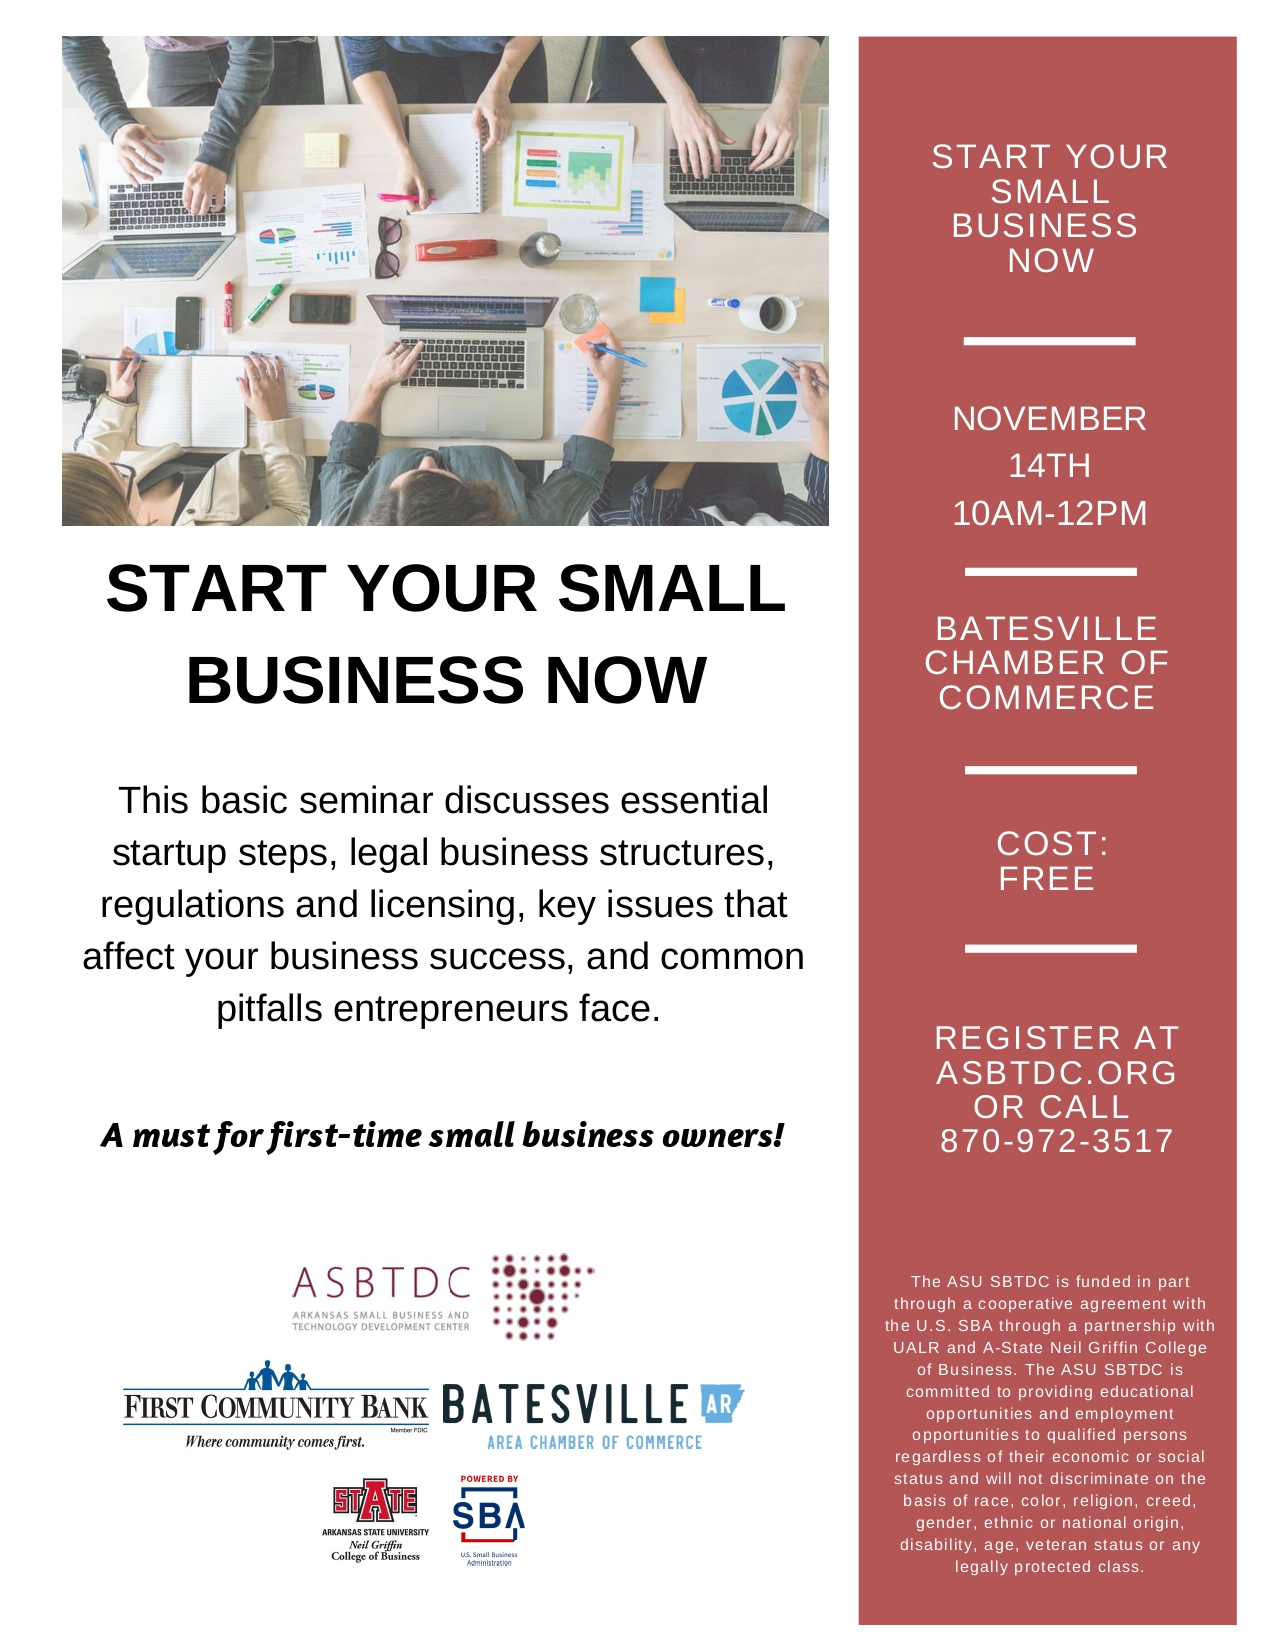 Start Your Small Business Workshop